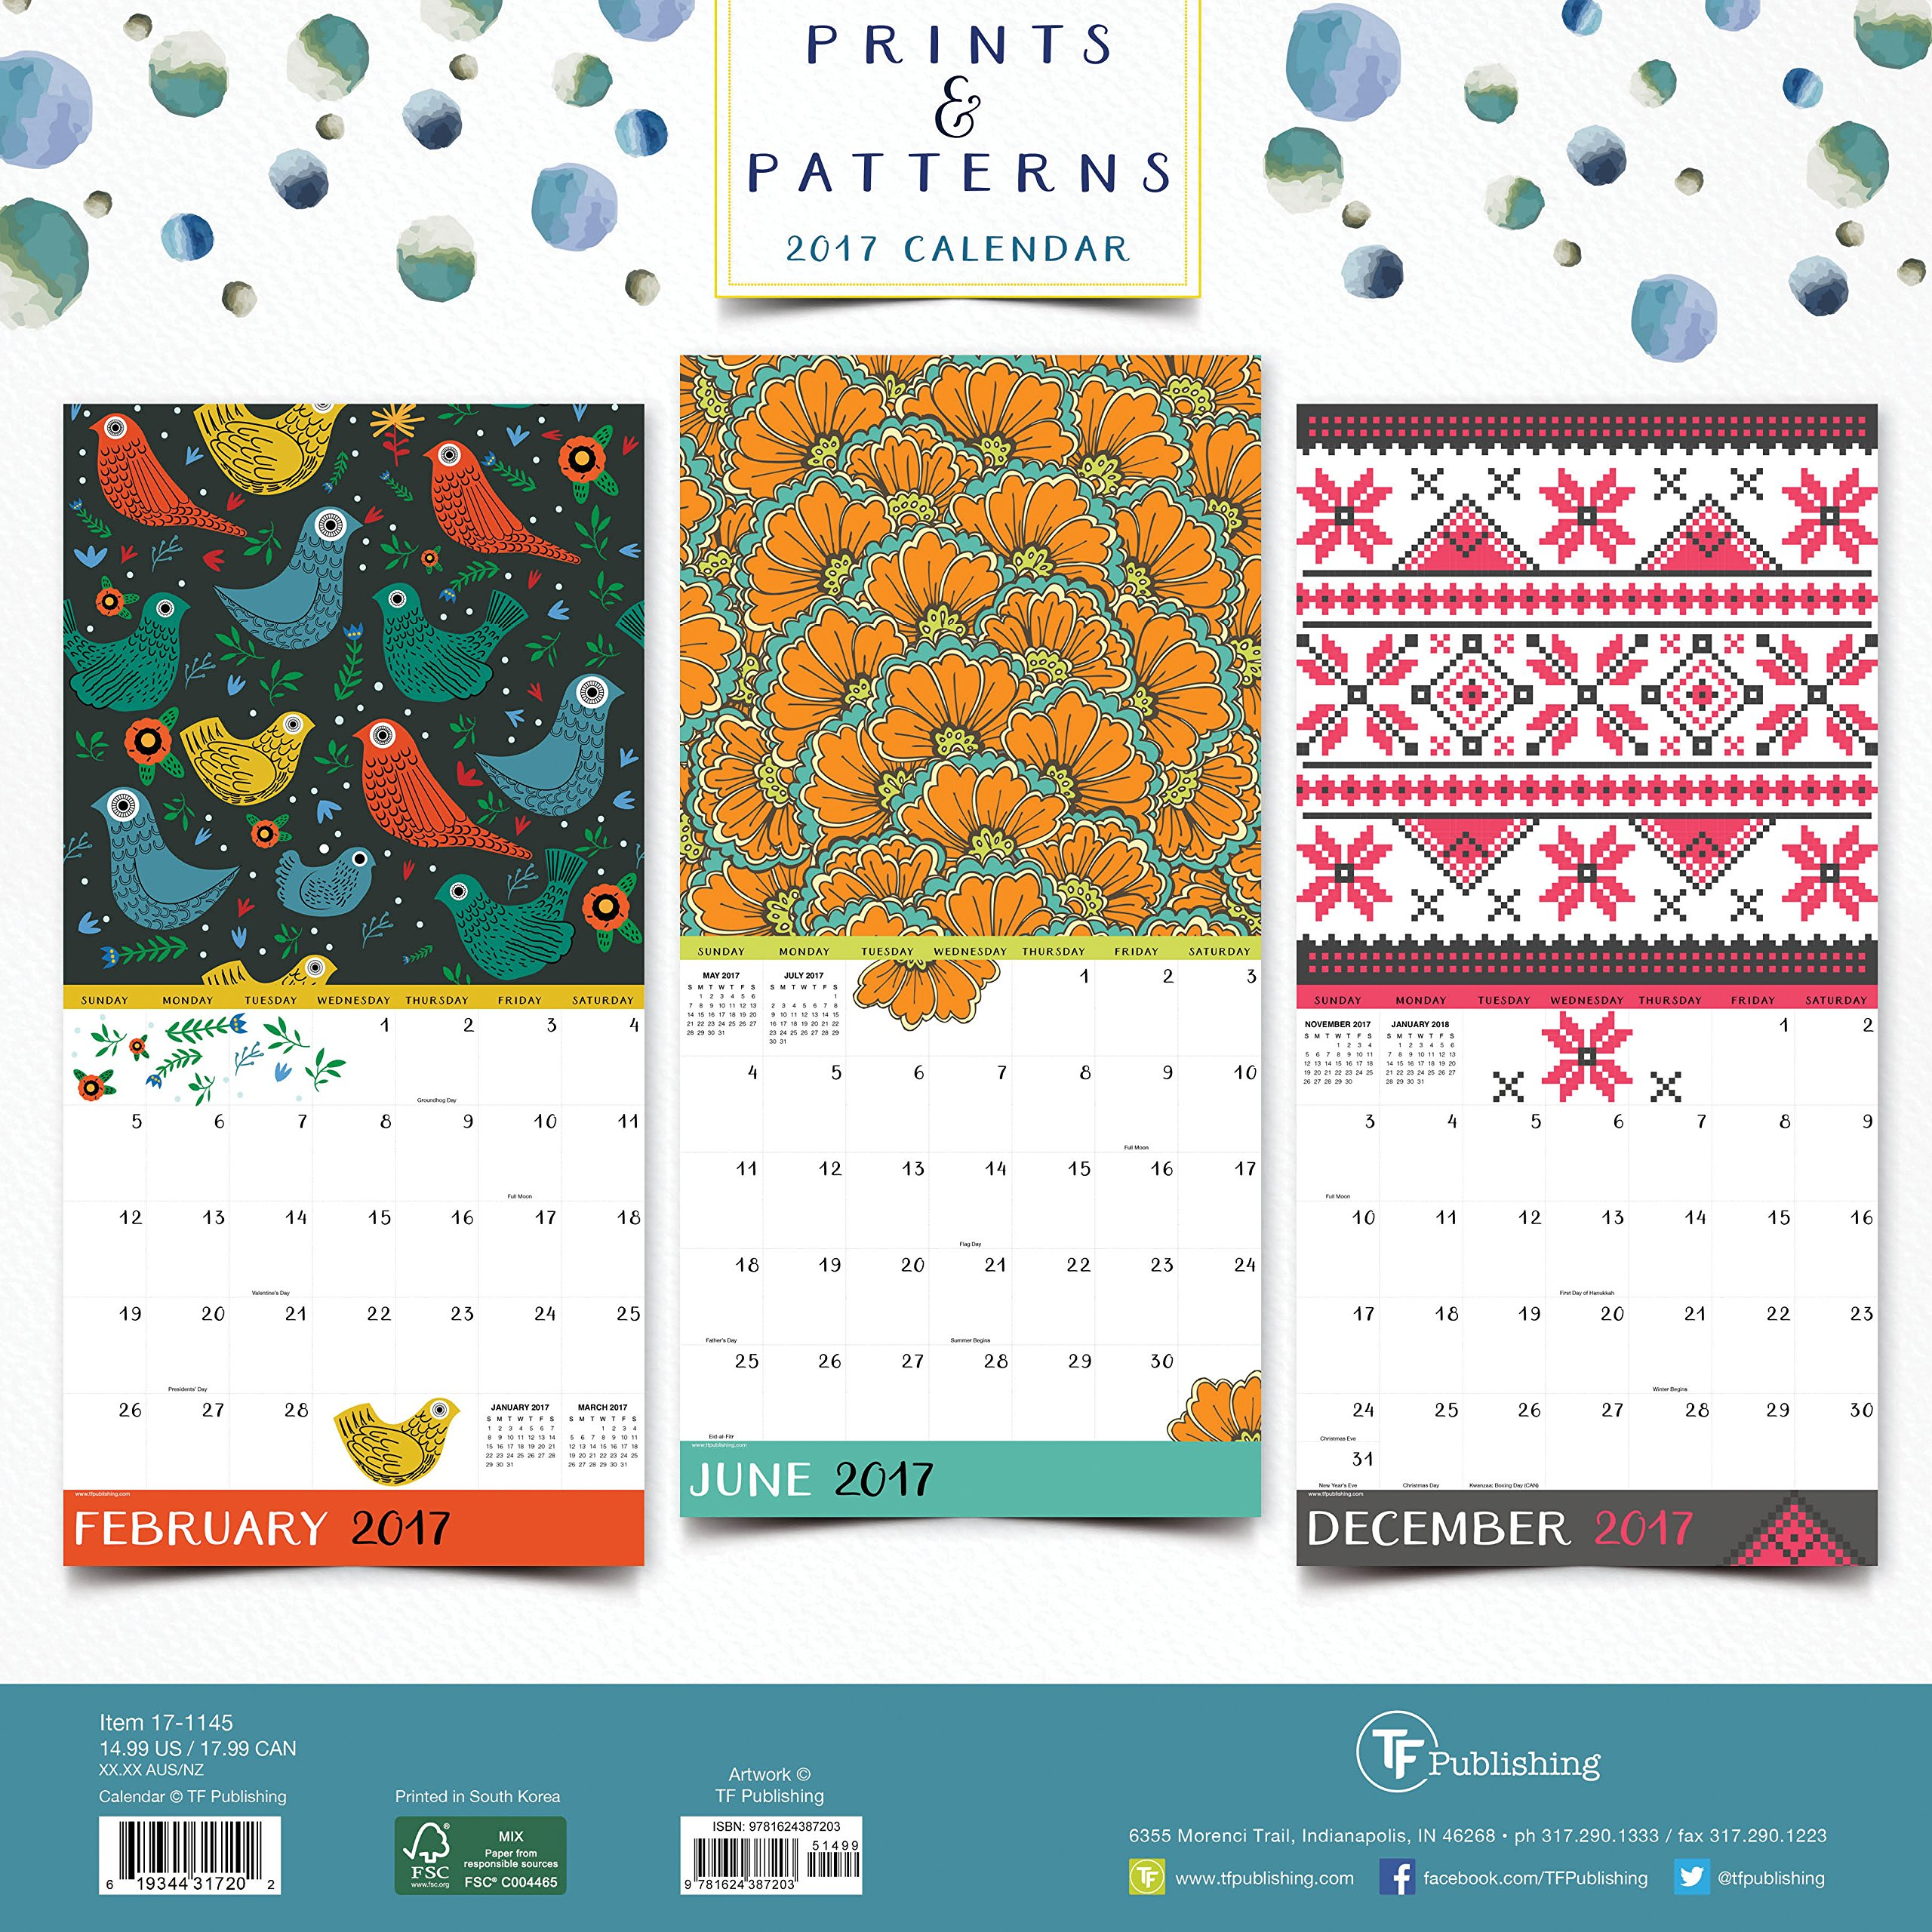 2017 Prints and Patterns Wall Calendar TF Publishing